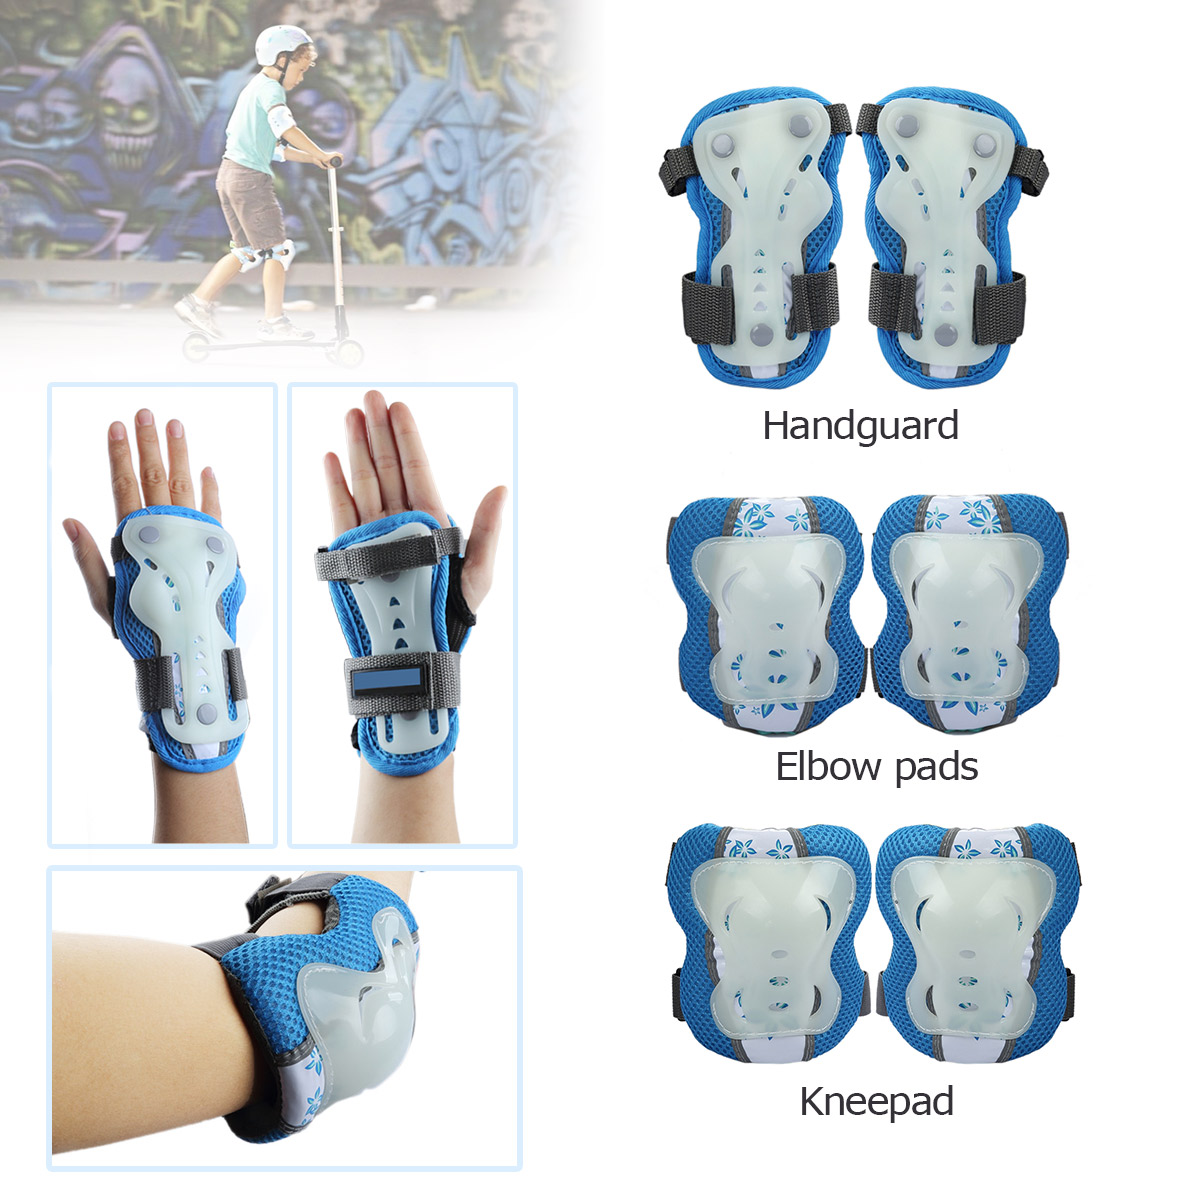 6PCs Kids Sport Skate Cycle Children Ski Knee Elbow Wrist Guard Protective Gear